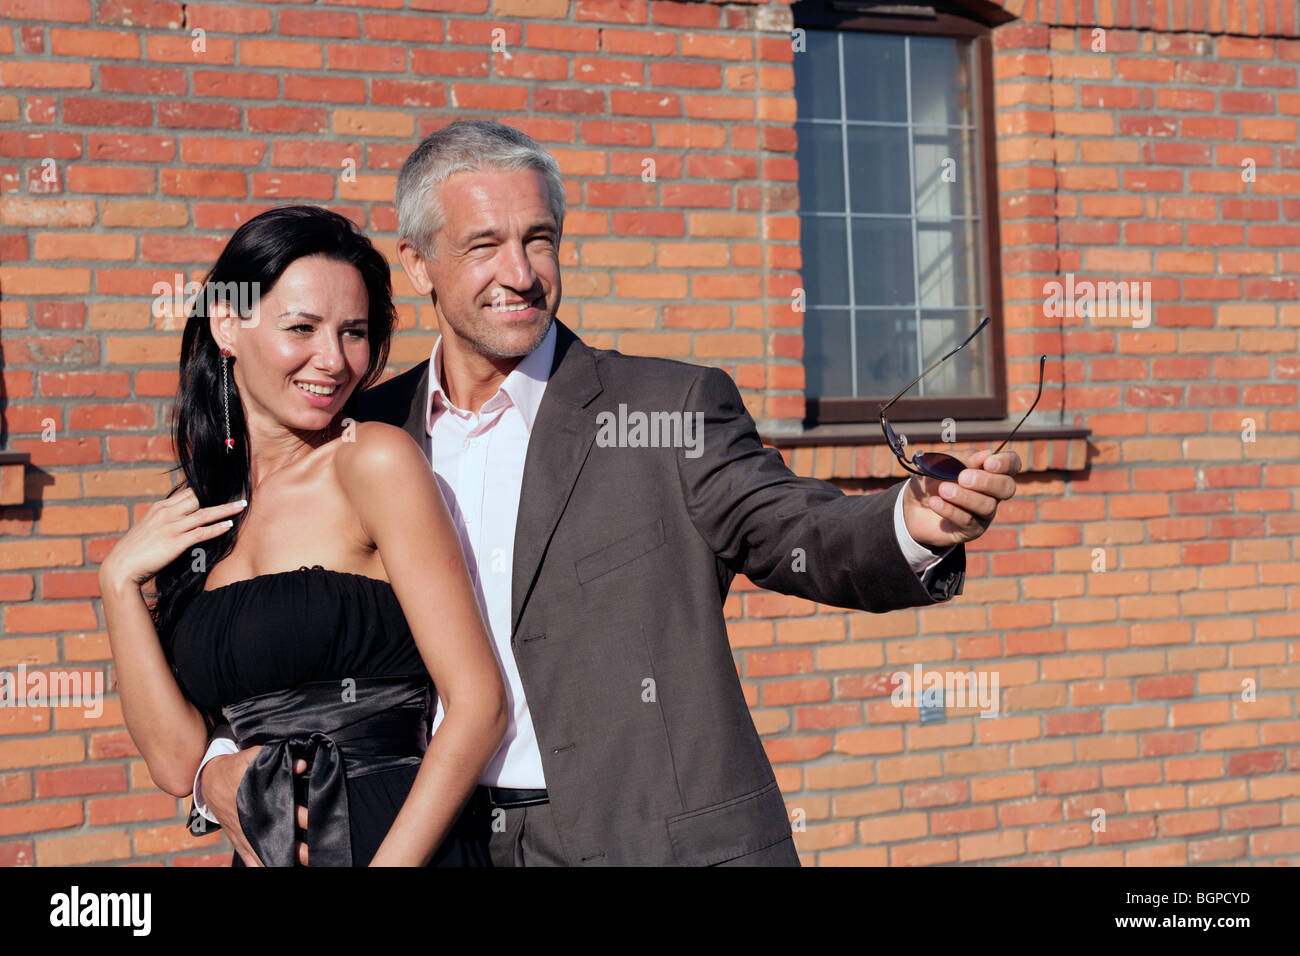 Attractive happy couple standing next to brick wall - Stock Image